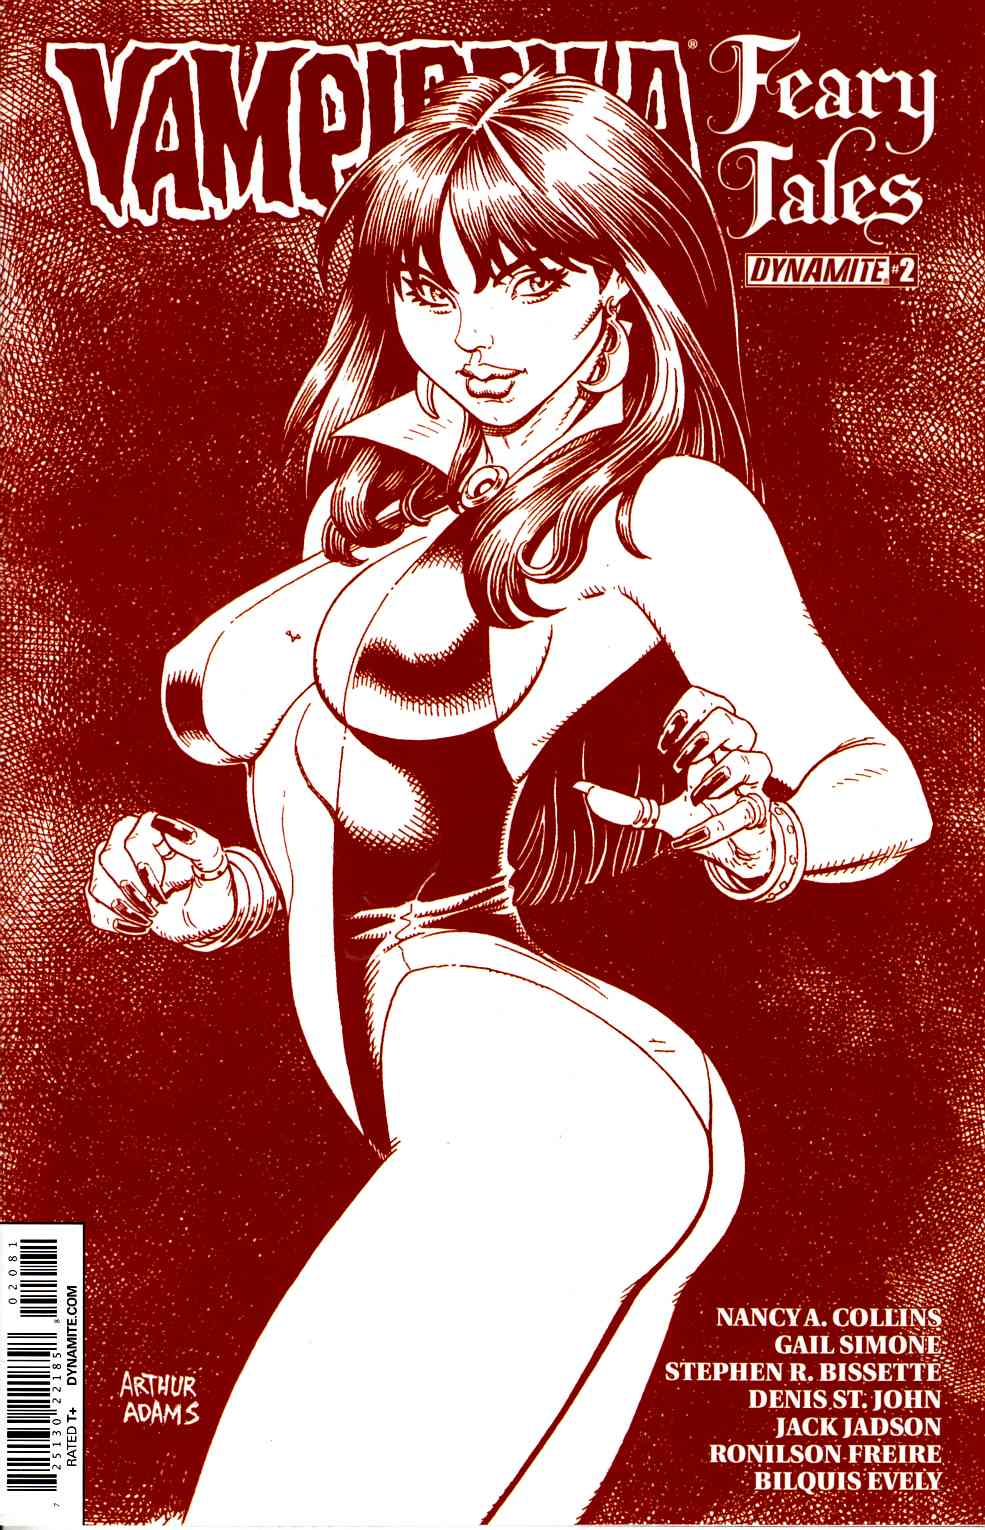 Vampirella Feary Tales #2 Cover F- Adams Blood Red Incentive [Dynamite Comic]